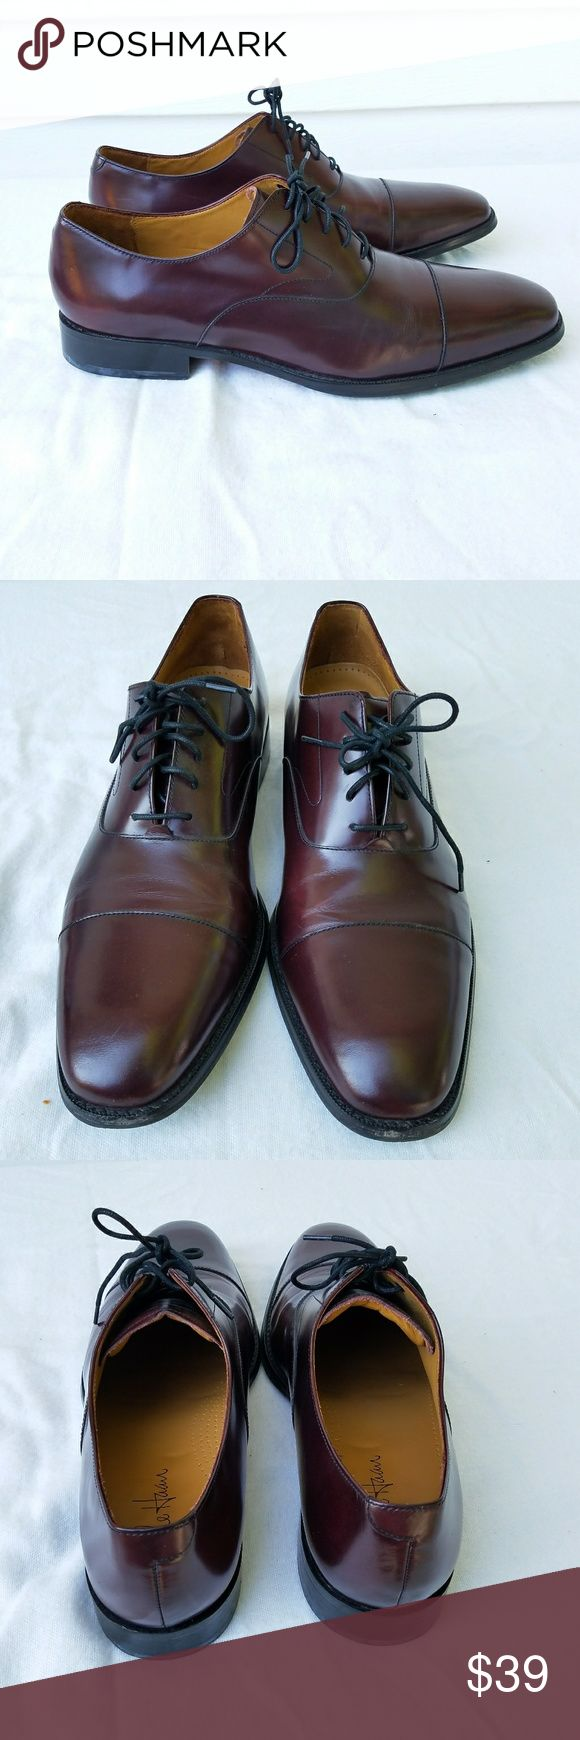 Cole Haan Garrett Cap Toe Derby Oxford Shoes Size 12. Burgundy. Very nice shape. Minor opaque or same color scuffs on inside of shoes/ toe area and a pen mark on the outside, can be seen in the photo.  No other issue.  There are a couple pictures that depicts a fading of color,  that's a reflection. Cole Haan Shoes Oxfords & Derbys